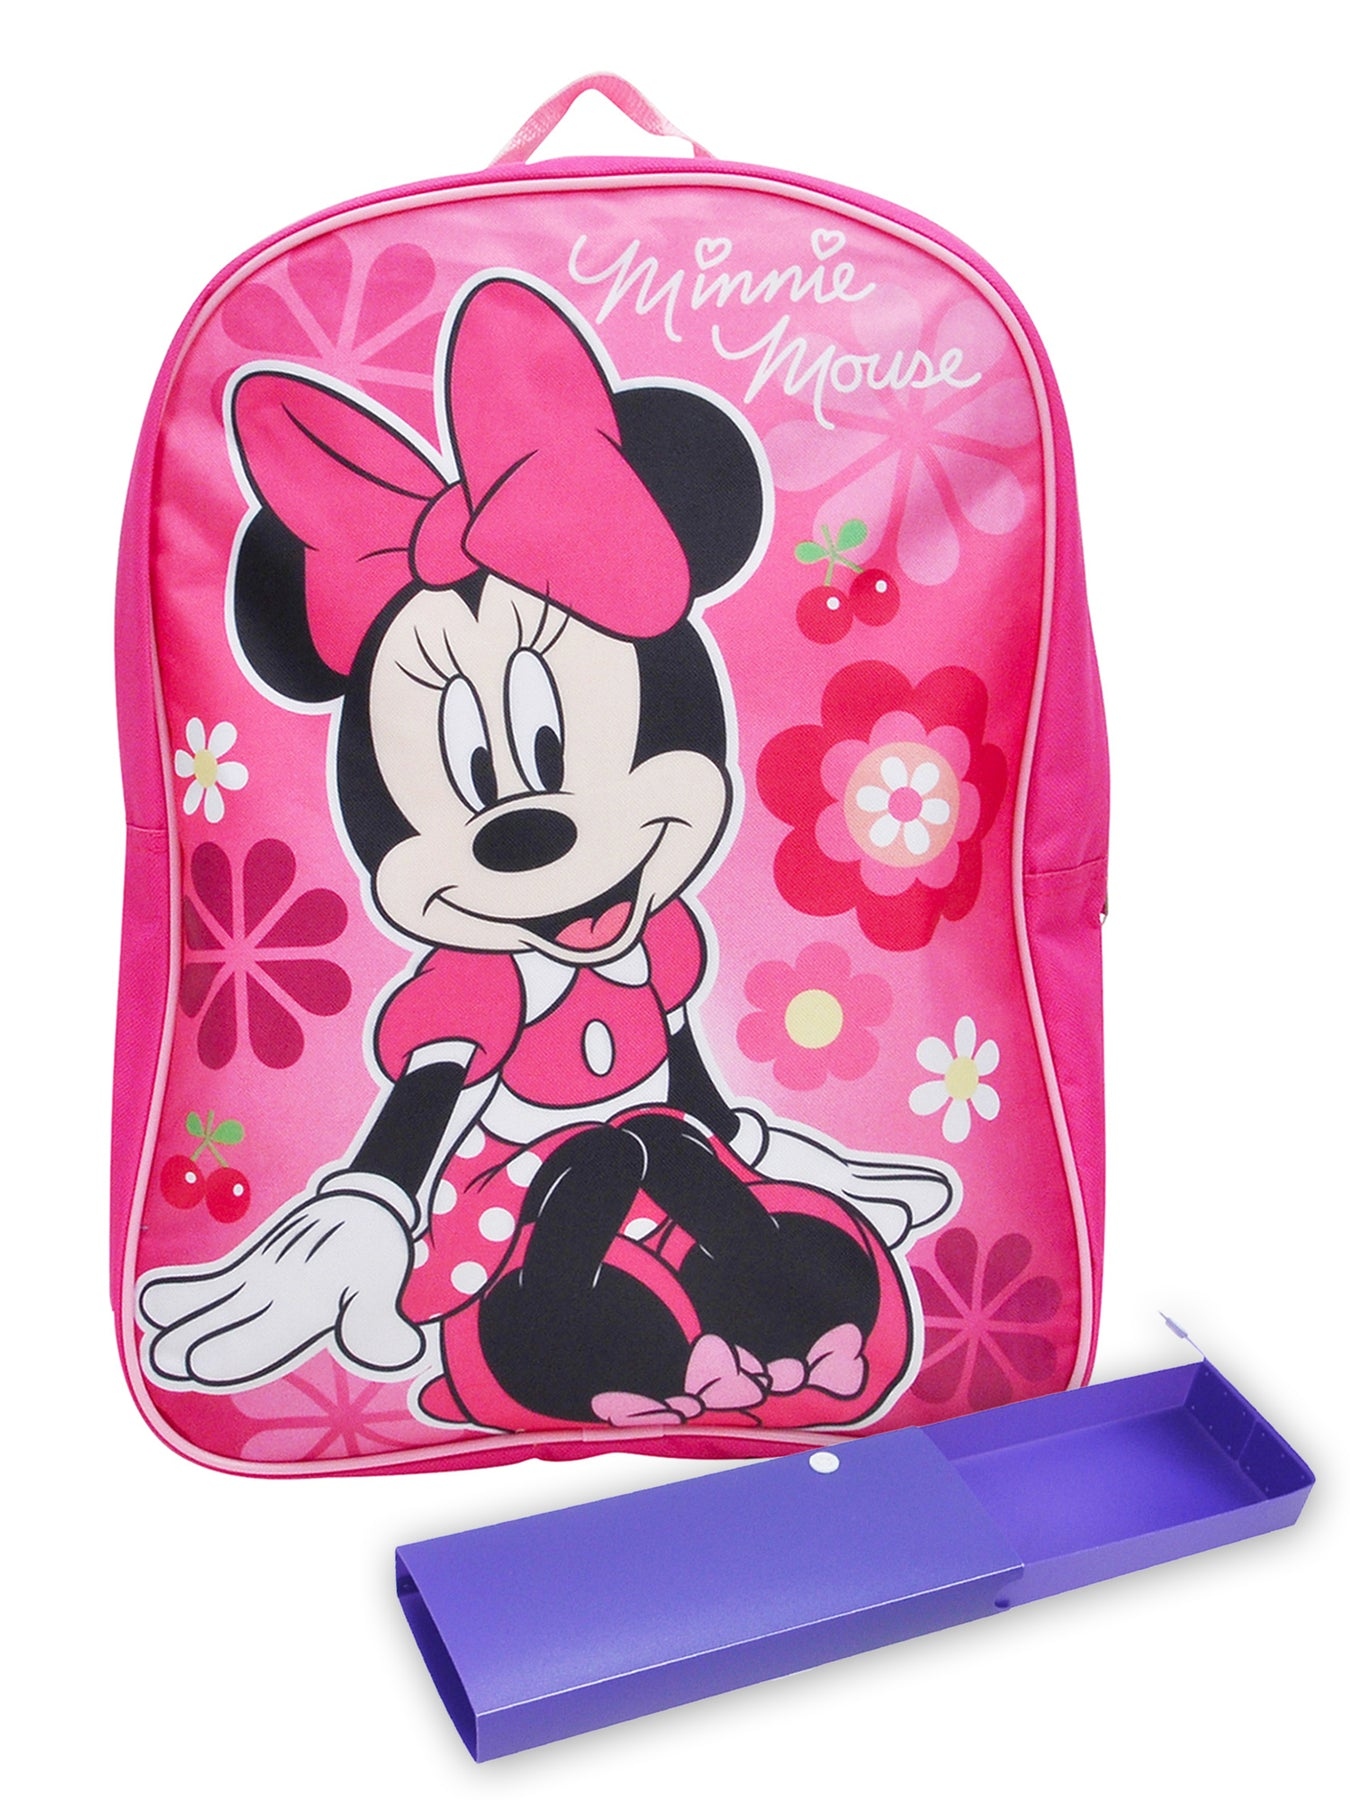 c3f6357535 Girls Minnie Mouse Backpack 15